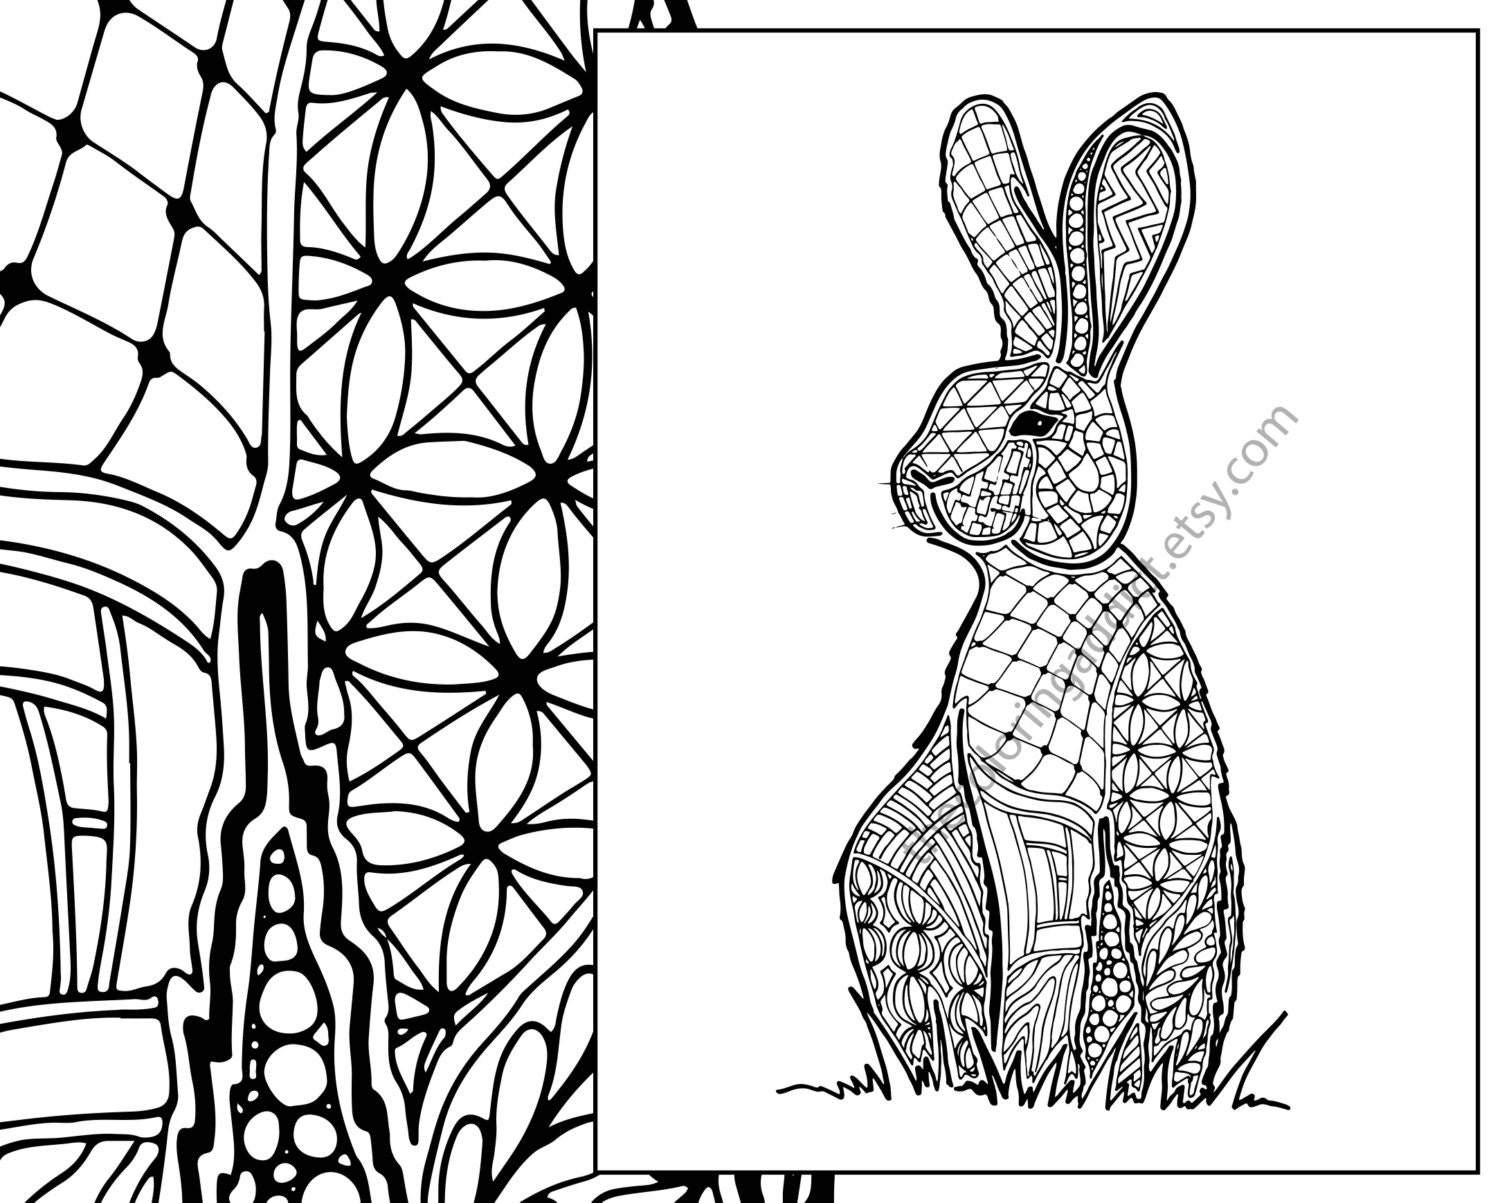 Zentangle Animals Coloring Pages 85x11 Coloring Pages